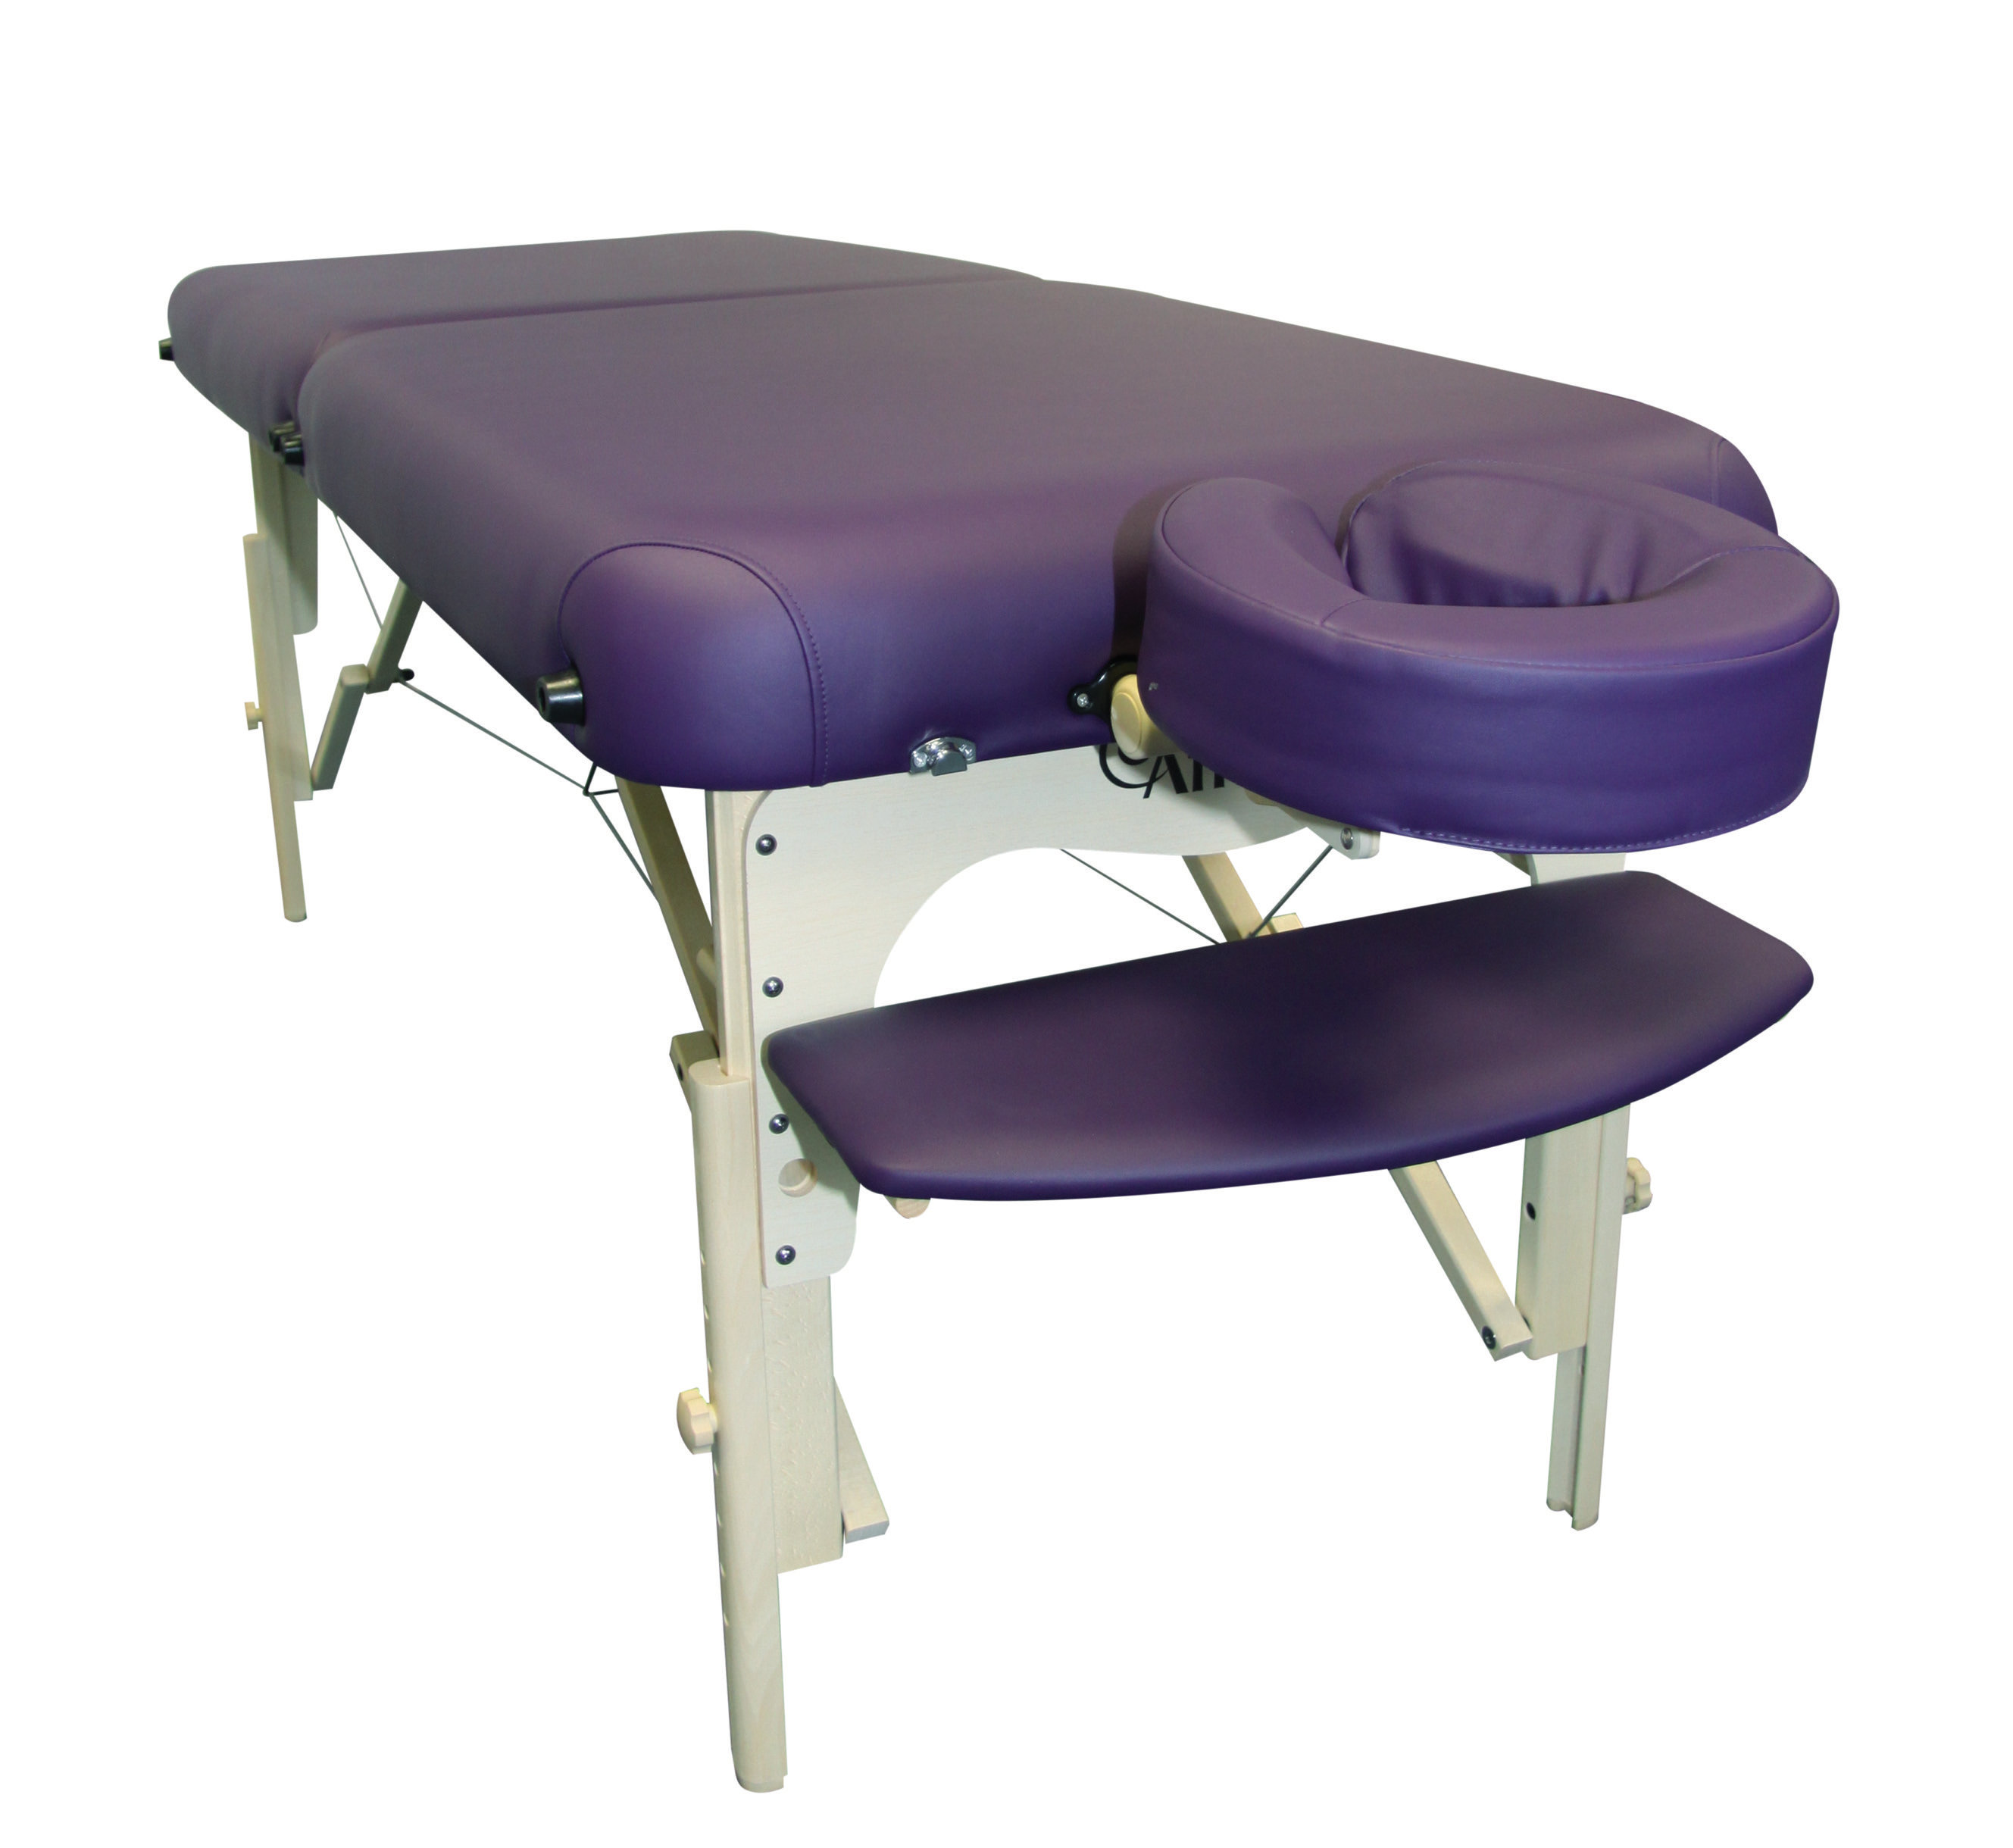 Admirable Affinity Deluxe Portable Massage Table Beutiful Home Inspiration Truamahrainfo